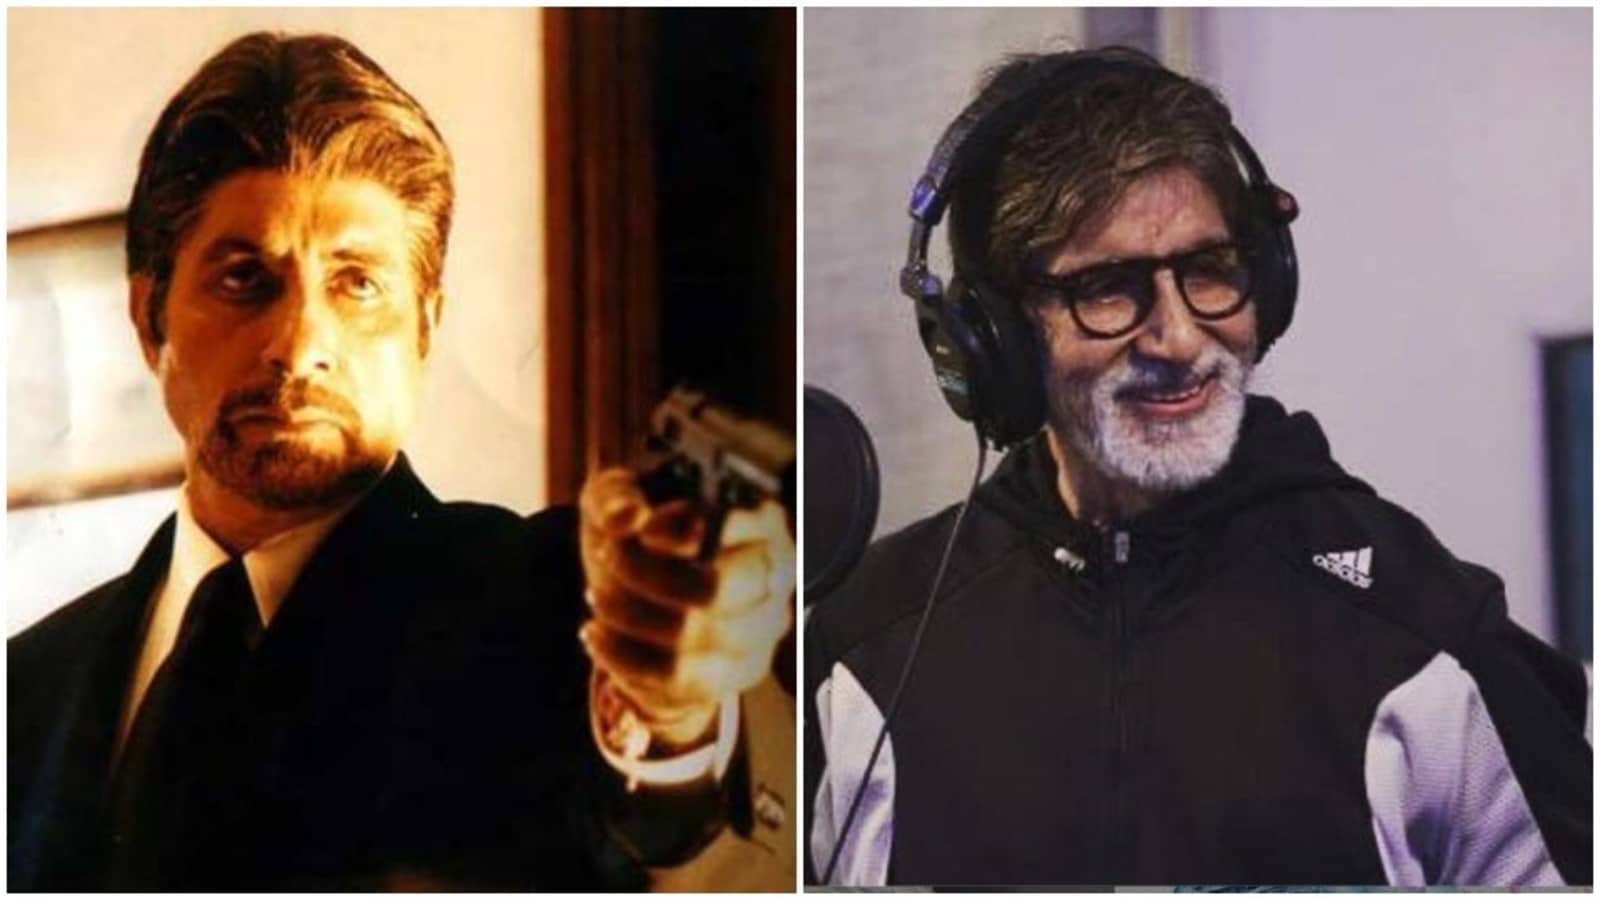 Amitabh Bachchan says Rakeysh Omprakash Mehra designed his French beard for Aks, which he 'hasn't removed since' - Hindustan Times